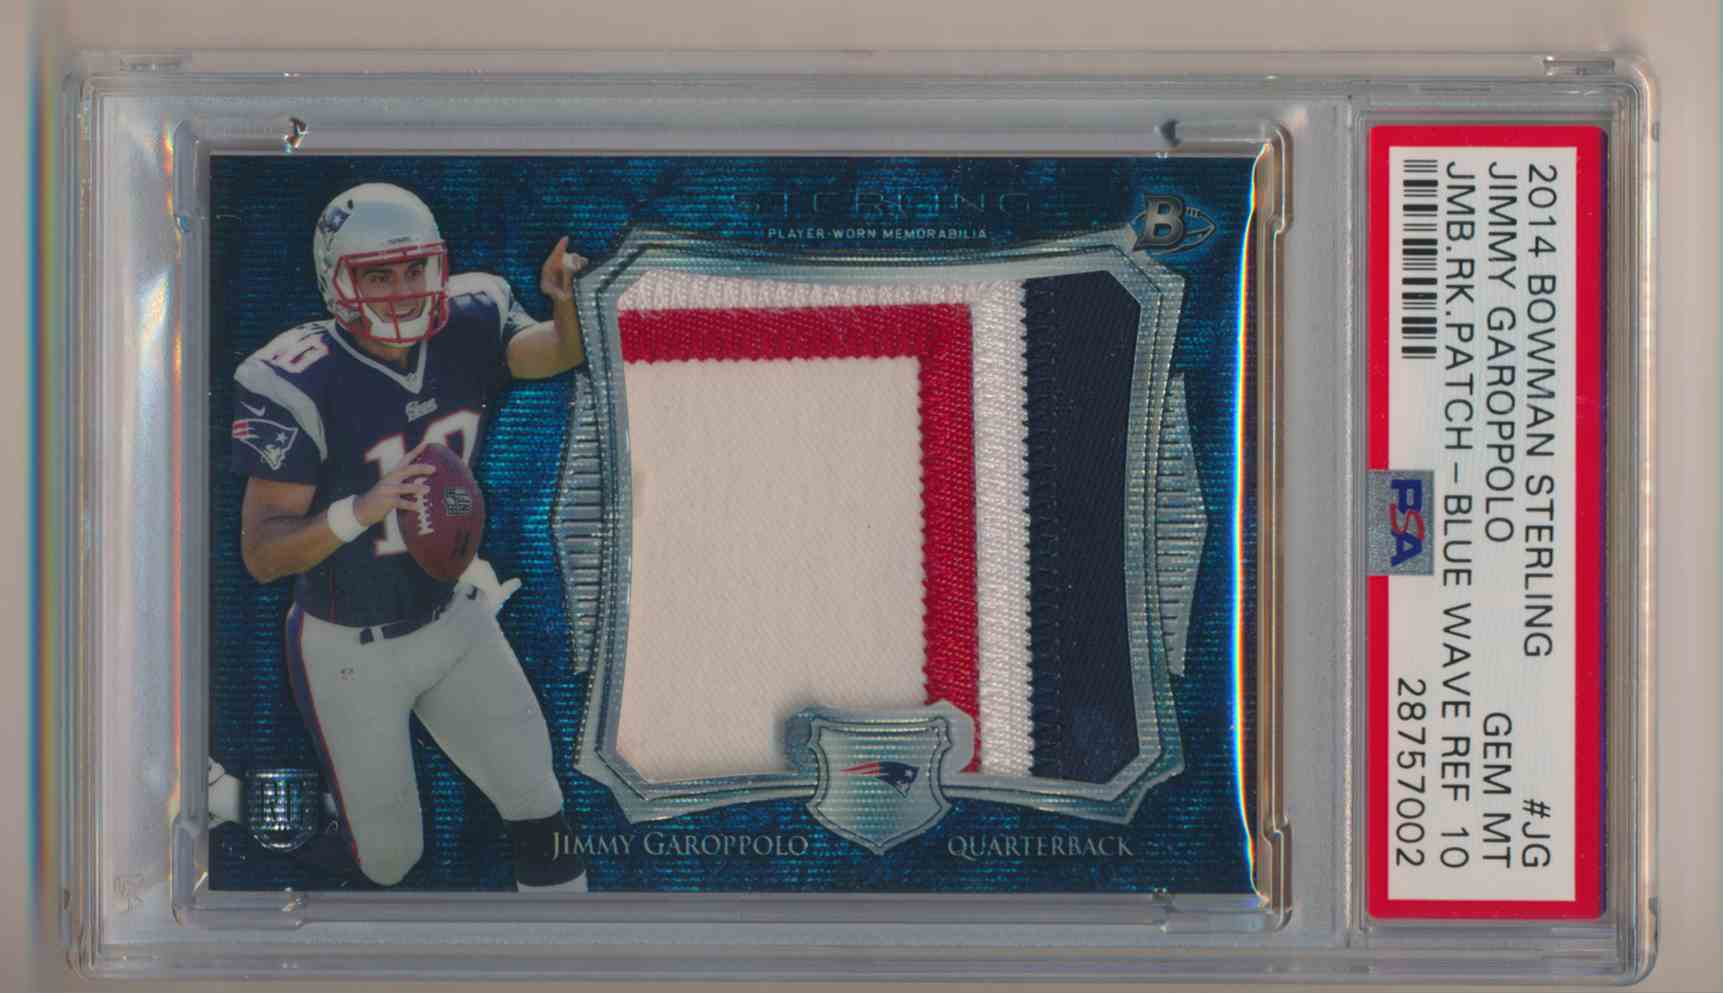 2014 Bowman Sterling Blue Wave Jimmy Garoppolo PSA 10 Gem Mint B card front image